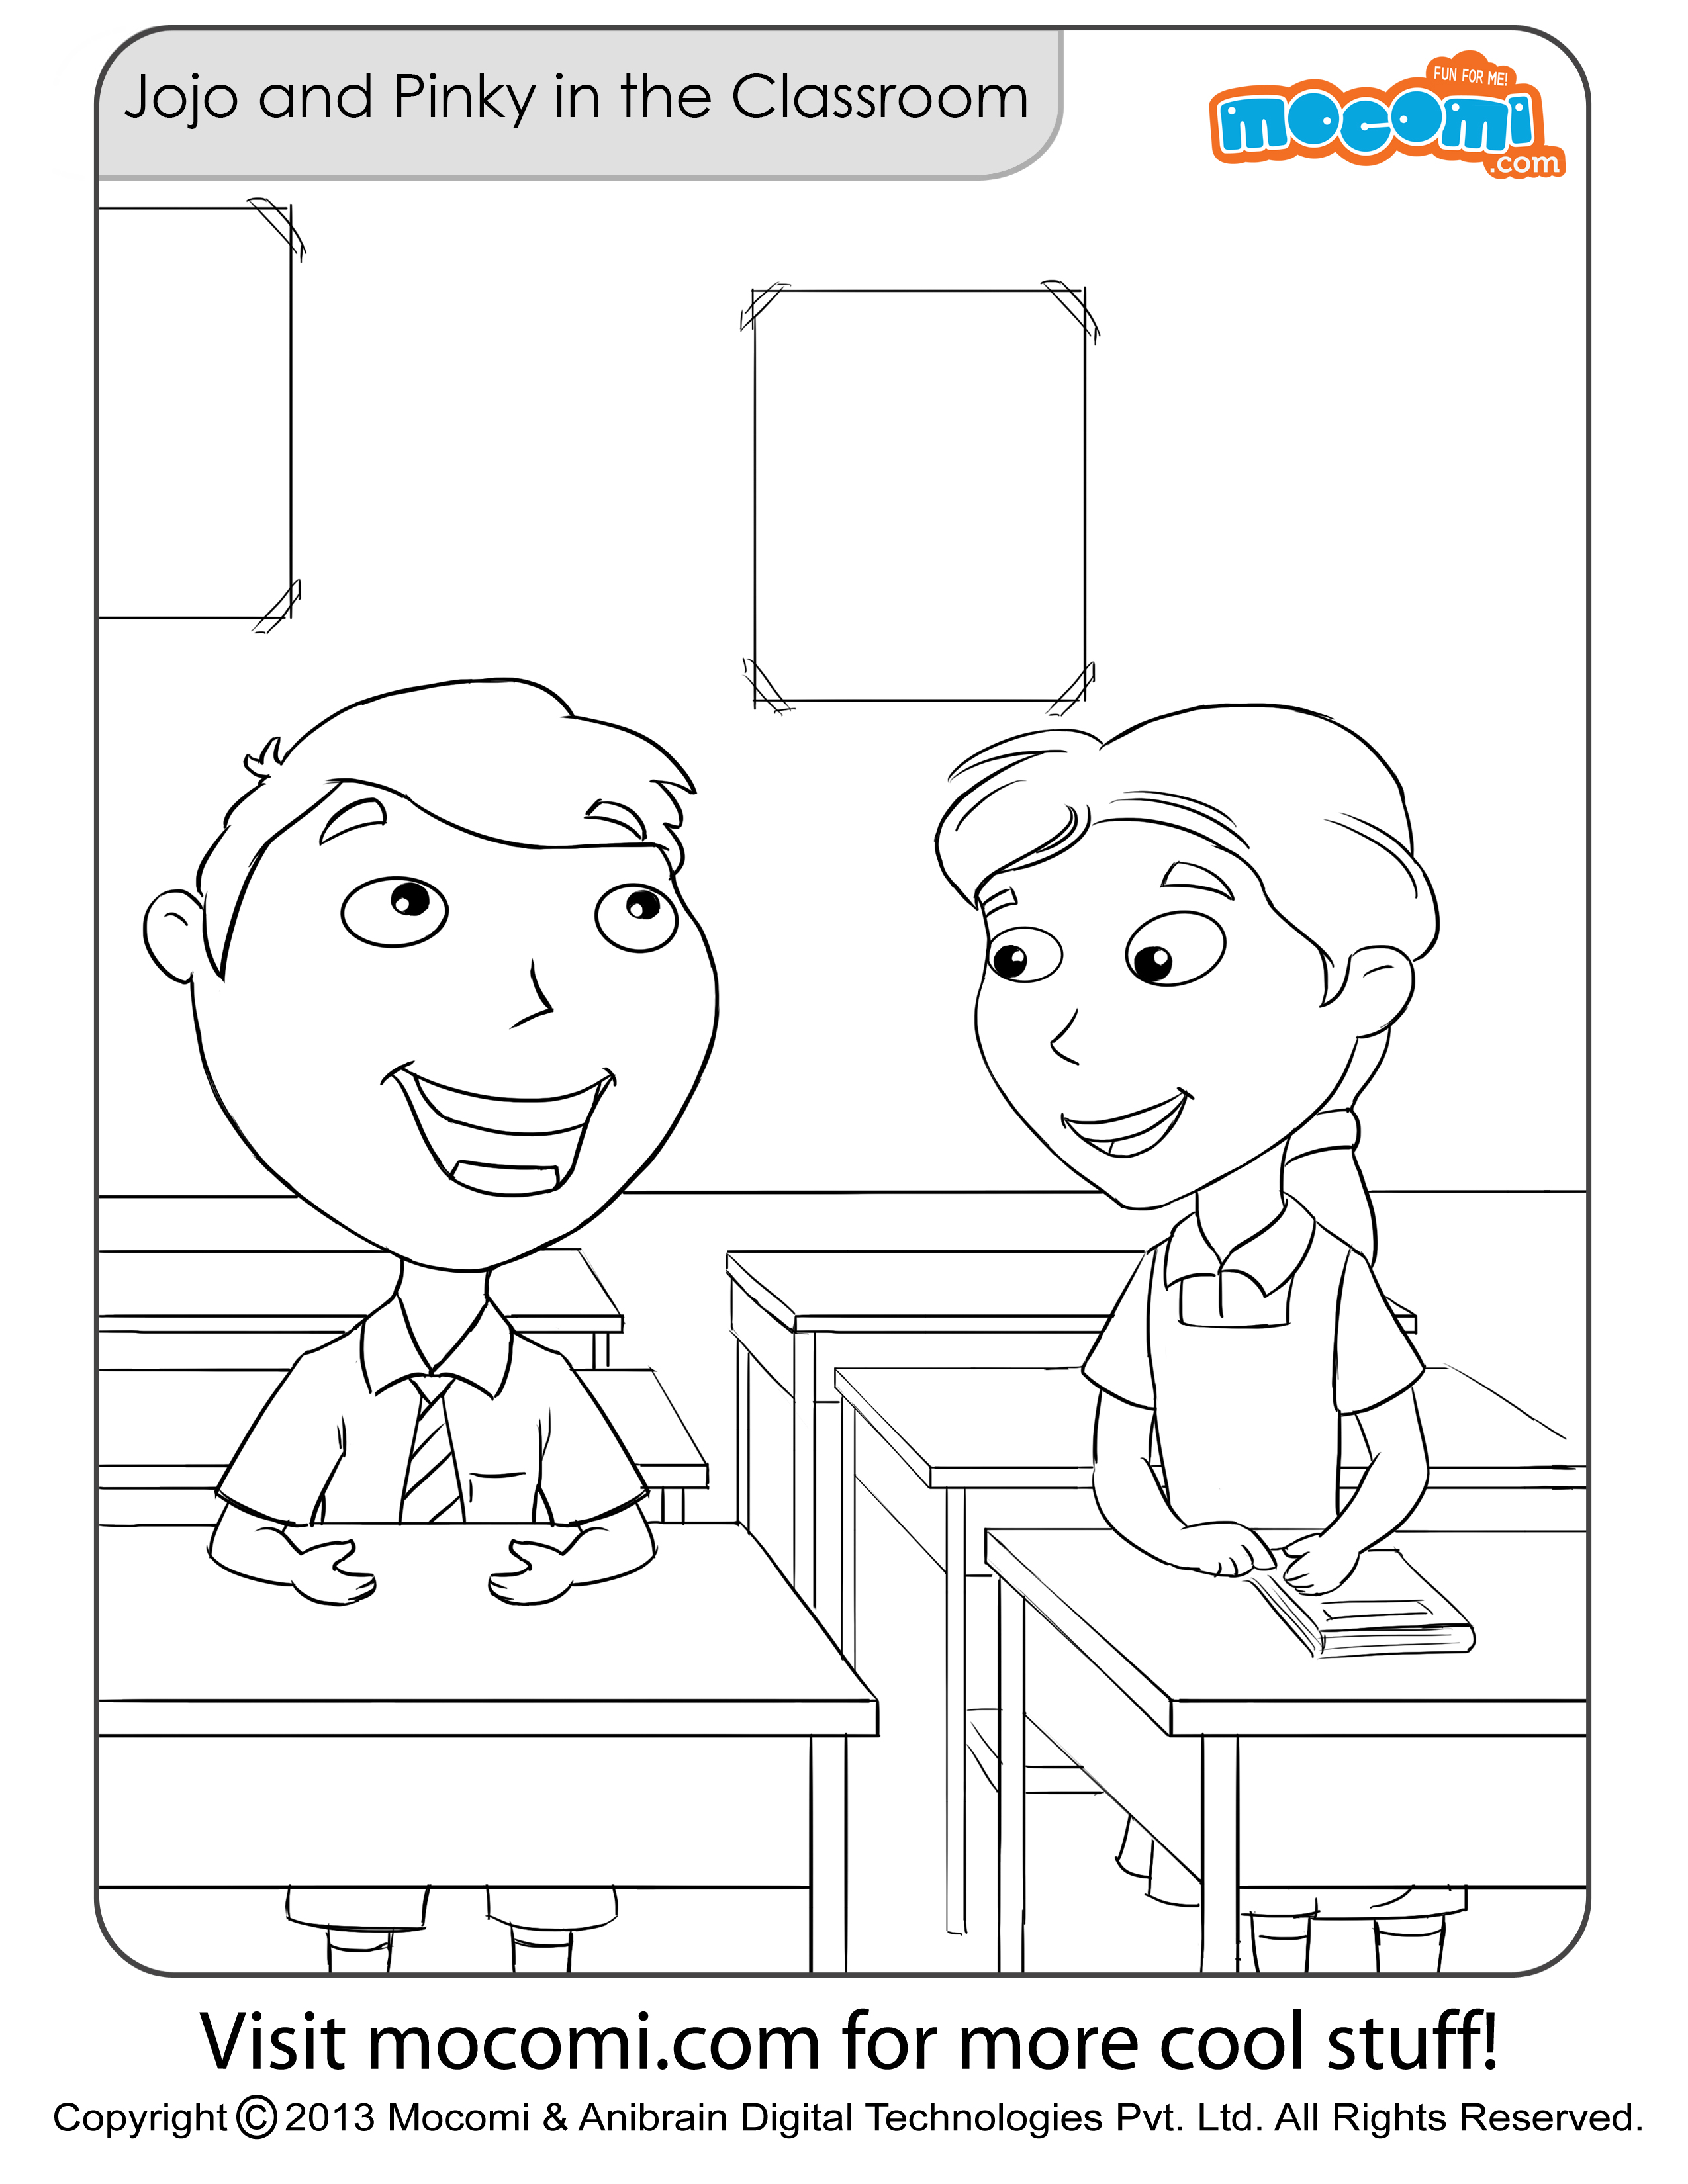 Jojo and Pinky in the Classroom – Colouring Page